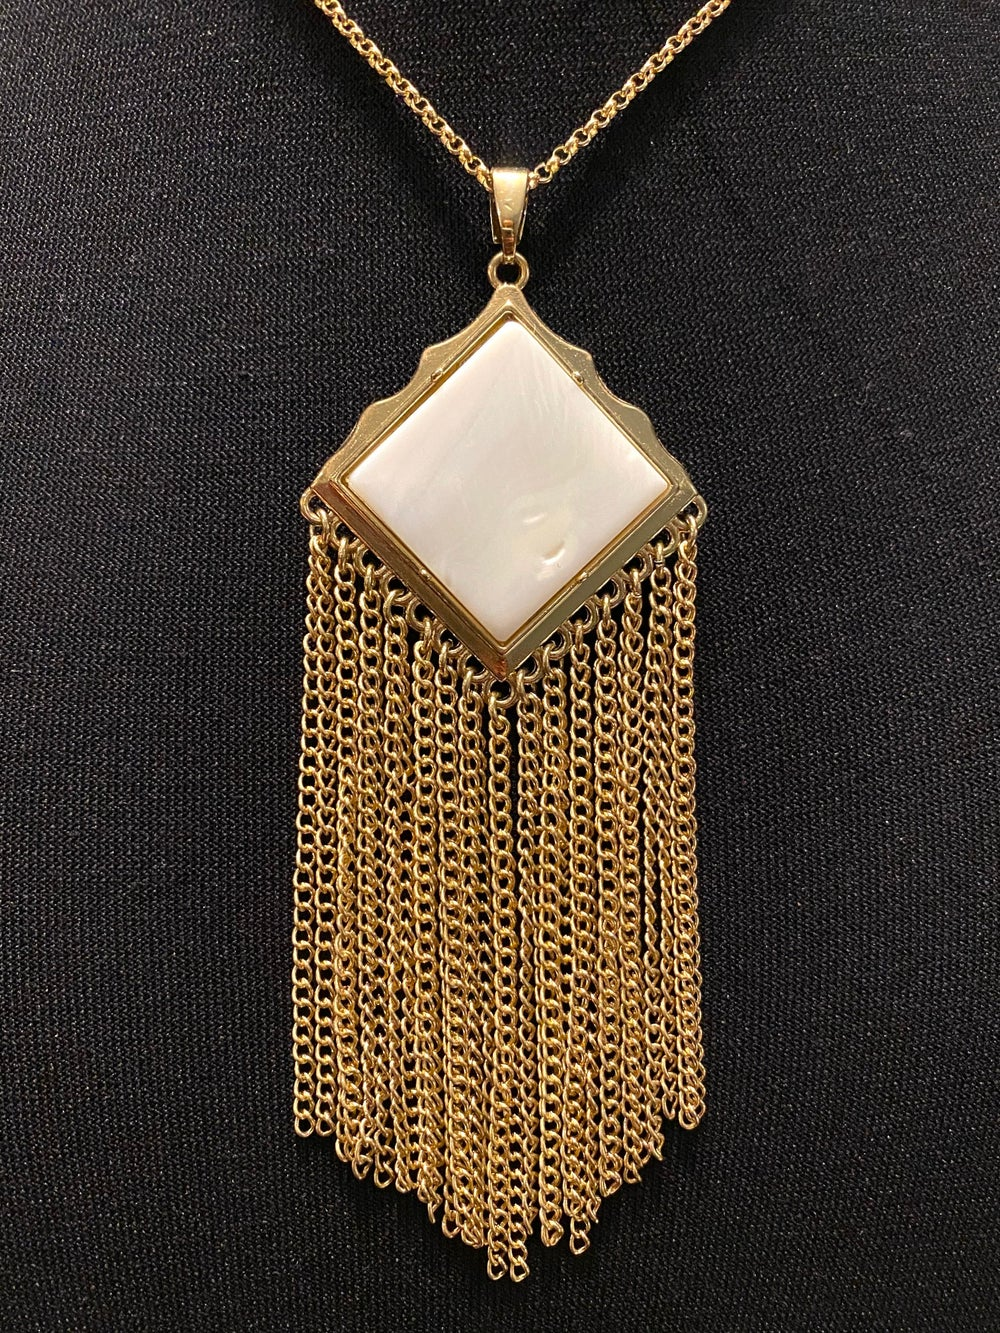 River Shell Pendant with Tassels and Gold Chain Necklace